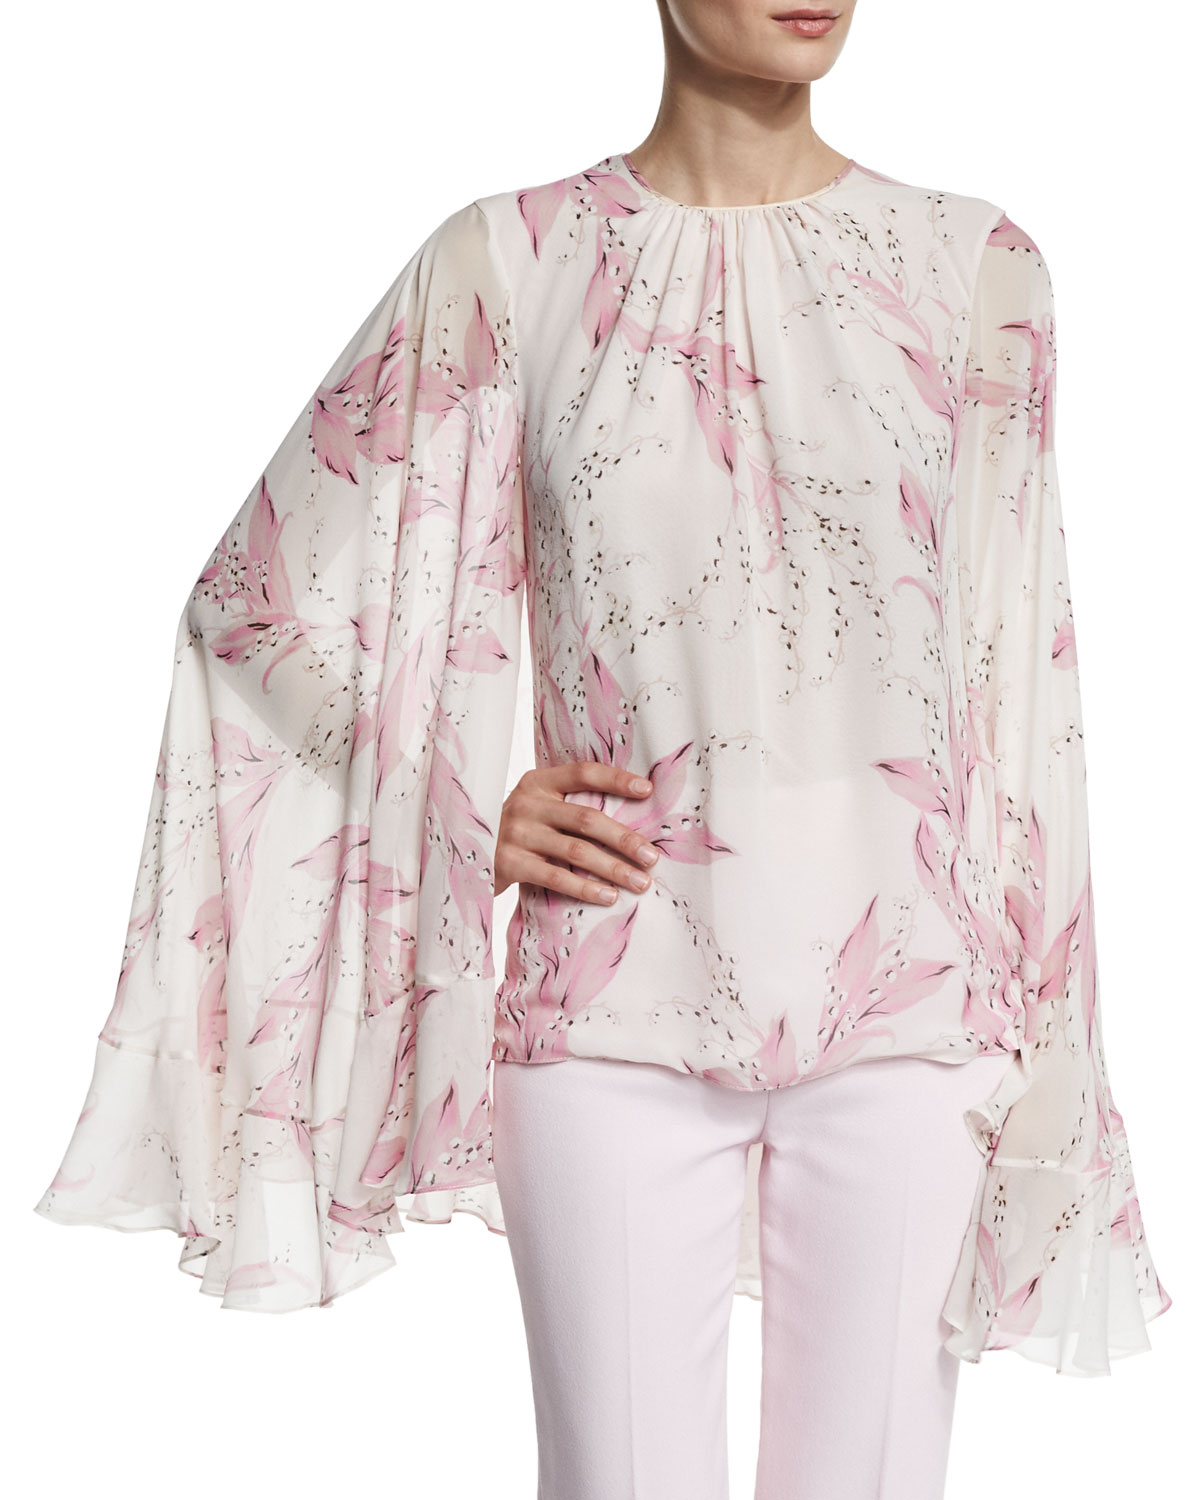 Lilly of the Valley Cape-Sleeve Blouse, White/Pink